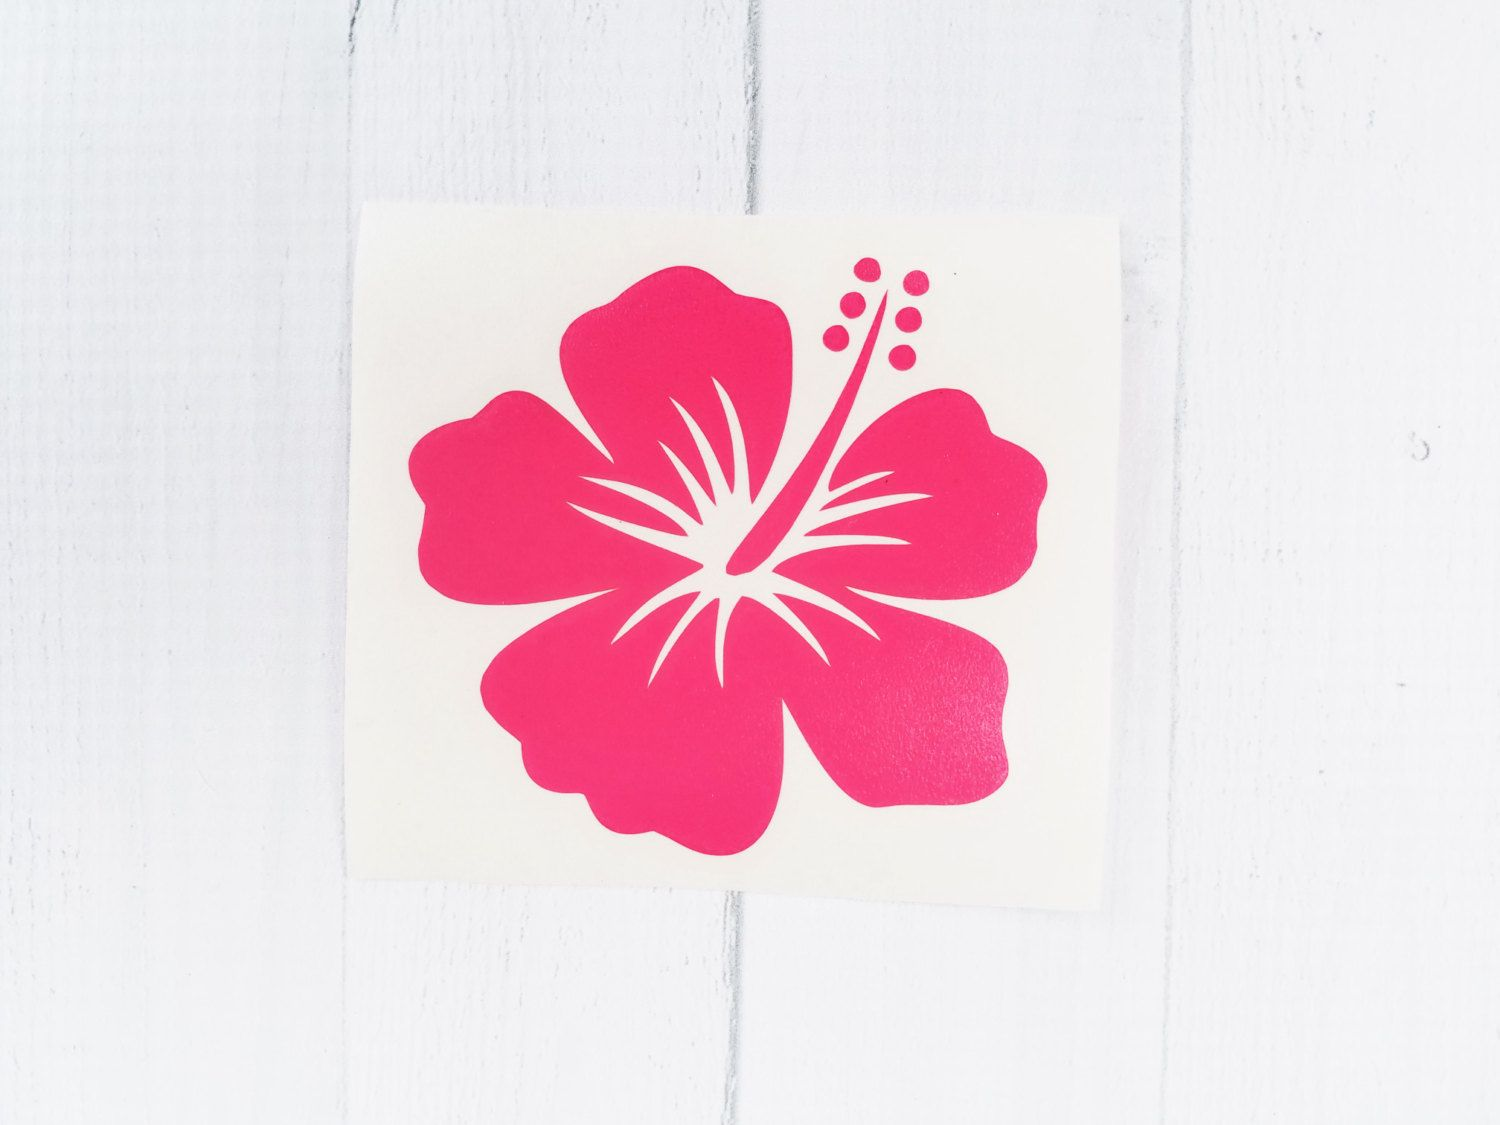 Excited To Share This Item From My Etsy Shop Hibiscus Flower Decal Hibiscus Flower Car Decal Vinyl Ca Custom Decal Stickers Hibiscus Flowers Car Decals Vinyl [ 1159 x 1500 Pixel ]